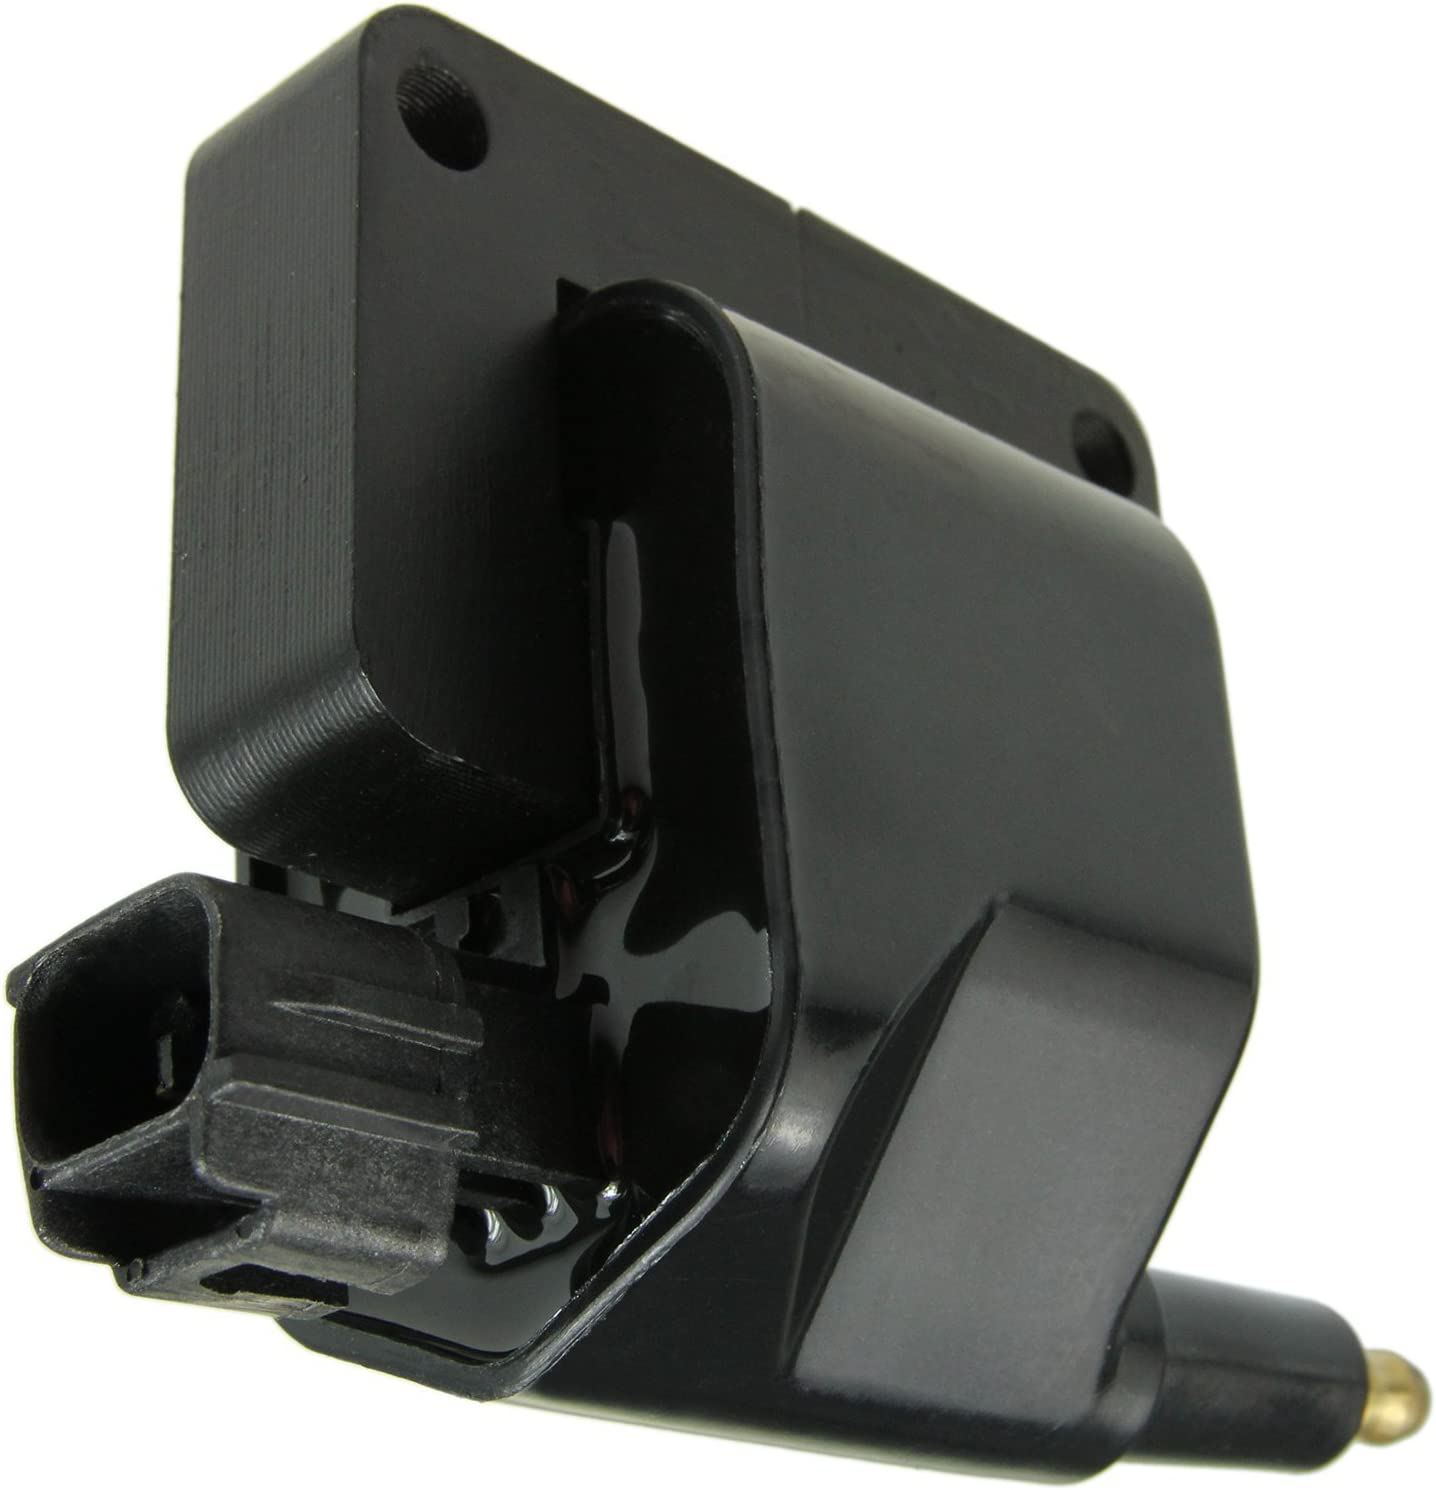 NEW in BOX! U2045 NGK NTK BLOCK IGNITION COIL 48196